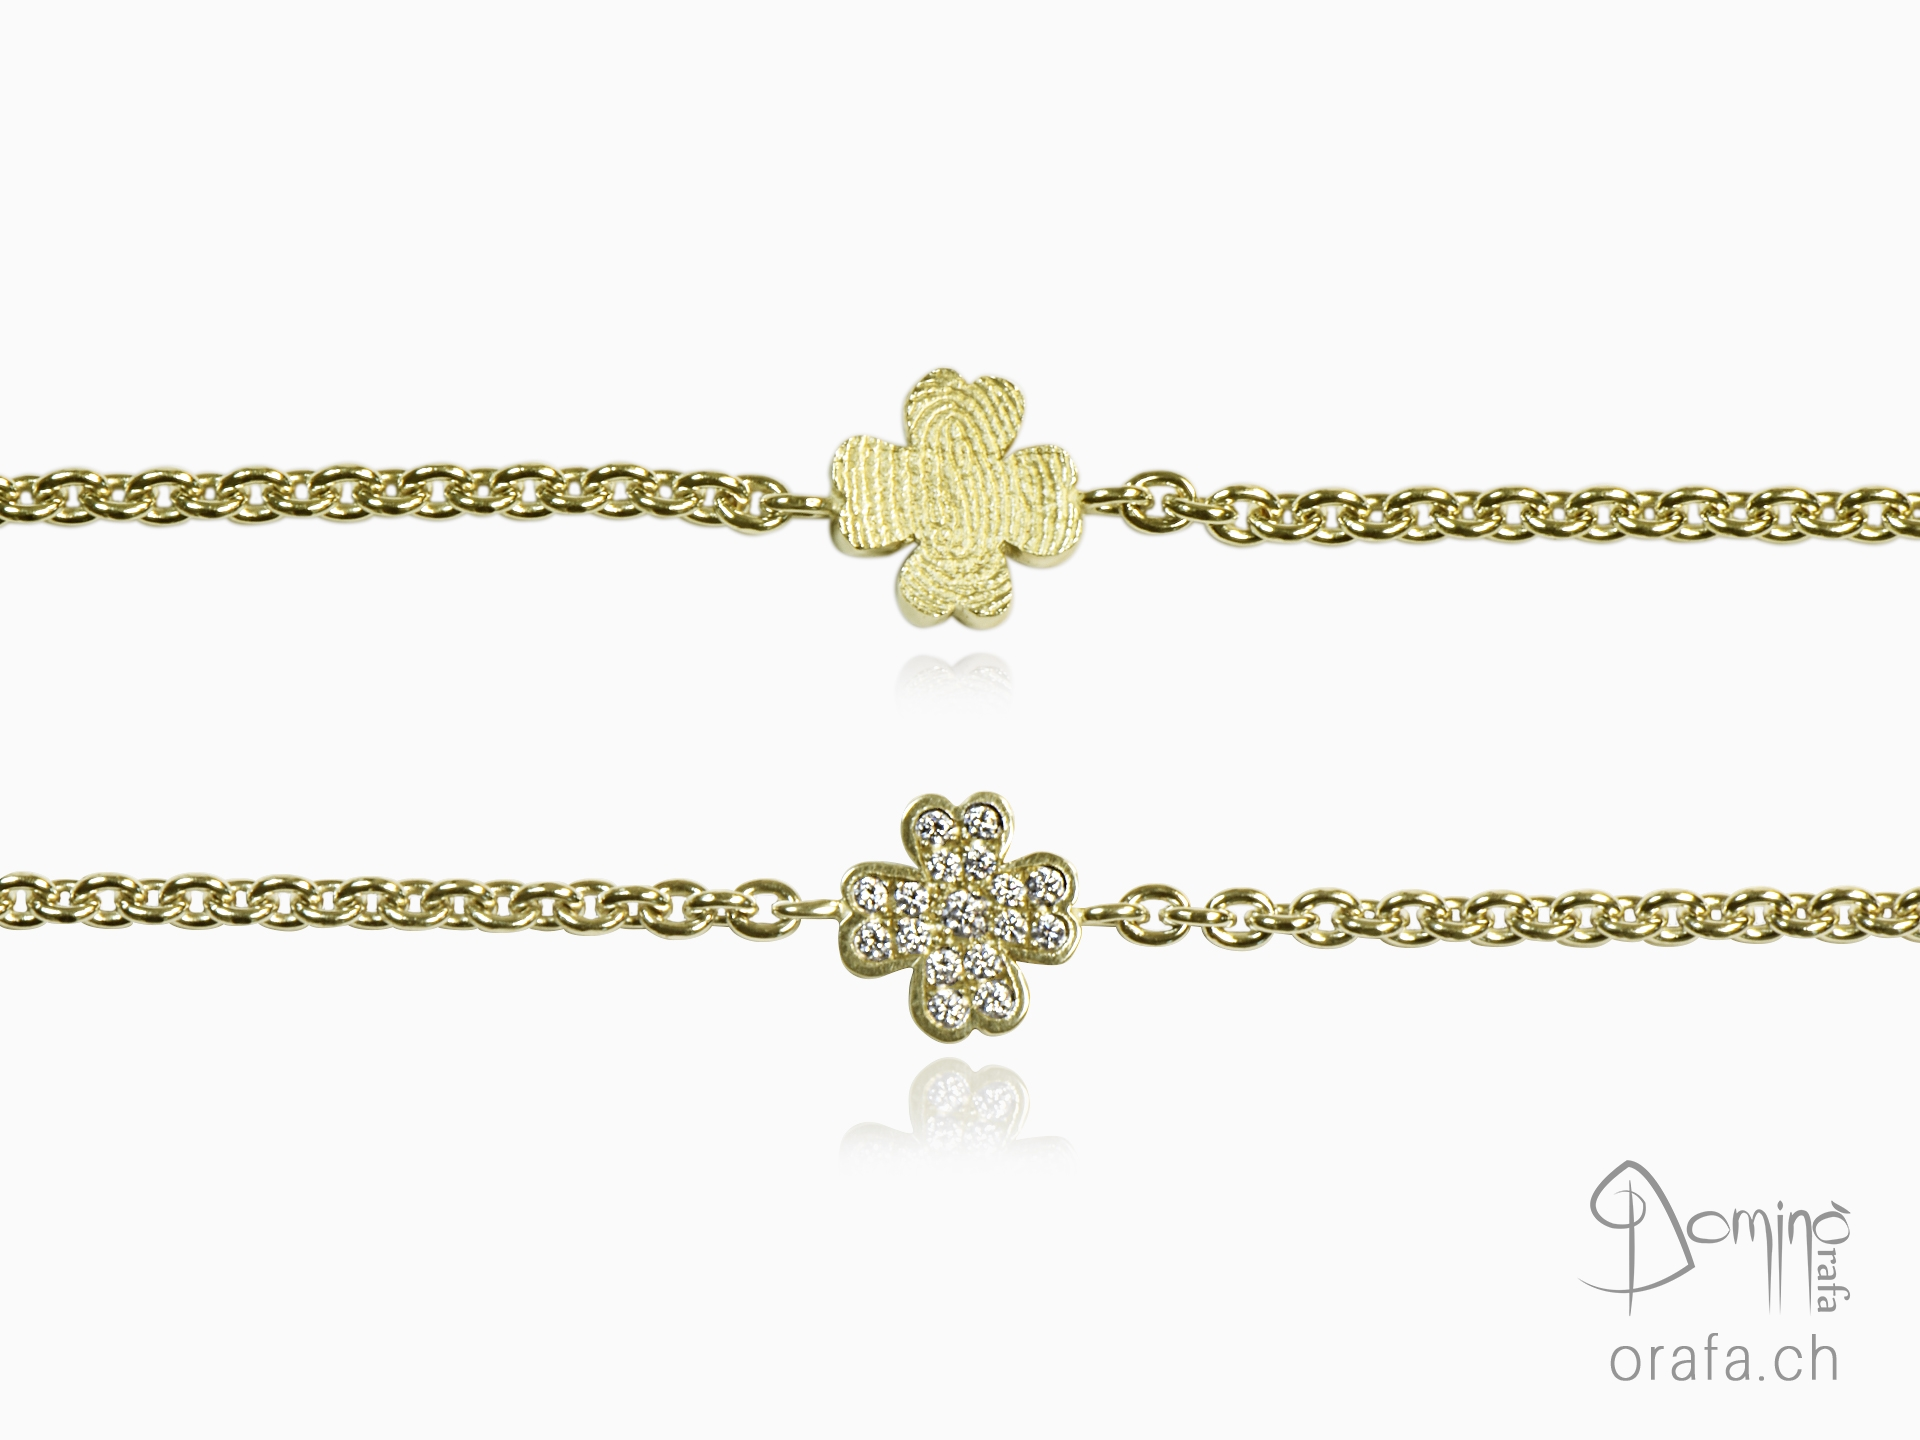 Four leaf clover bracelet with diamonds and fingerprint